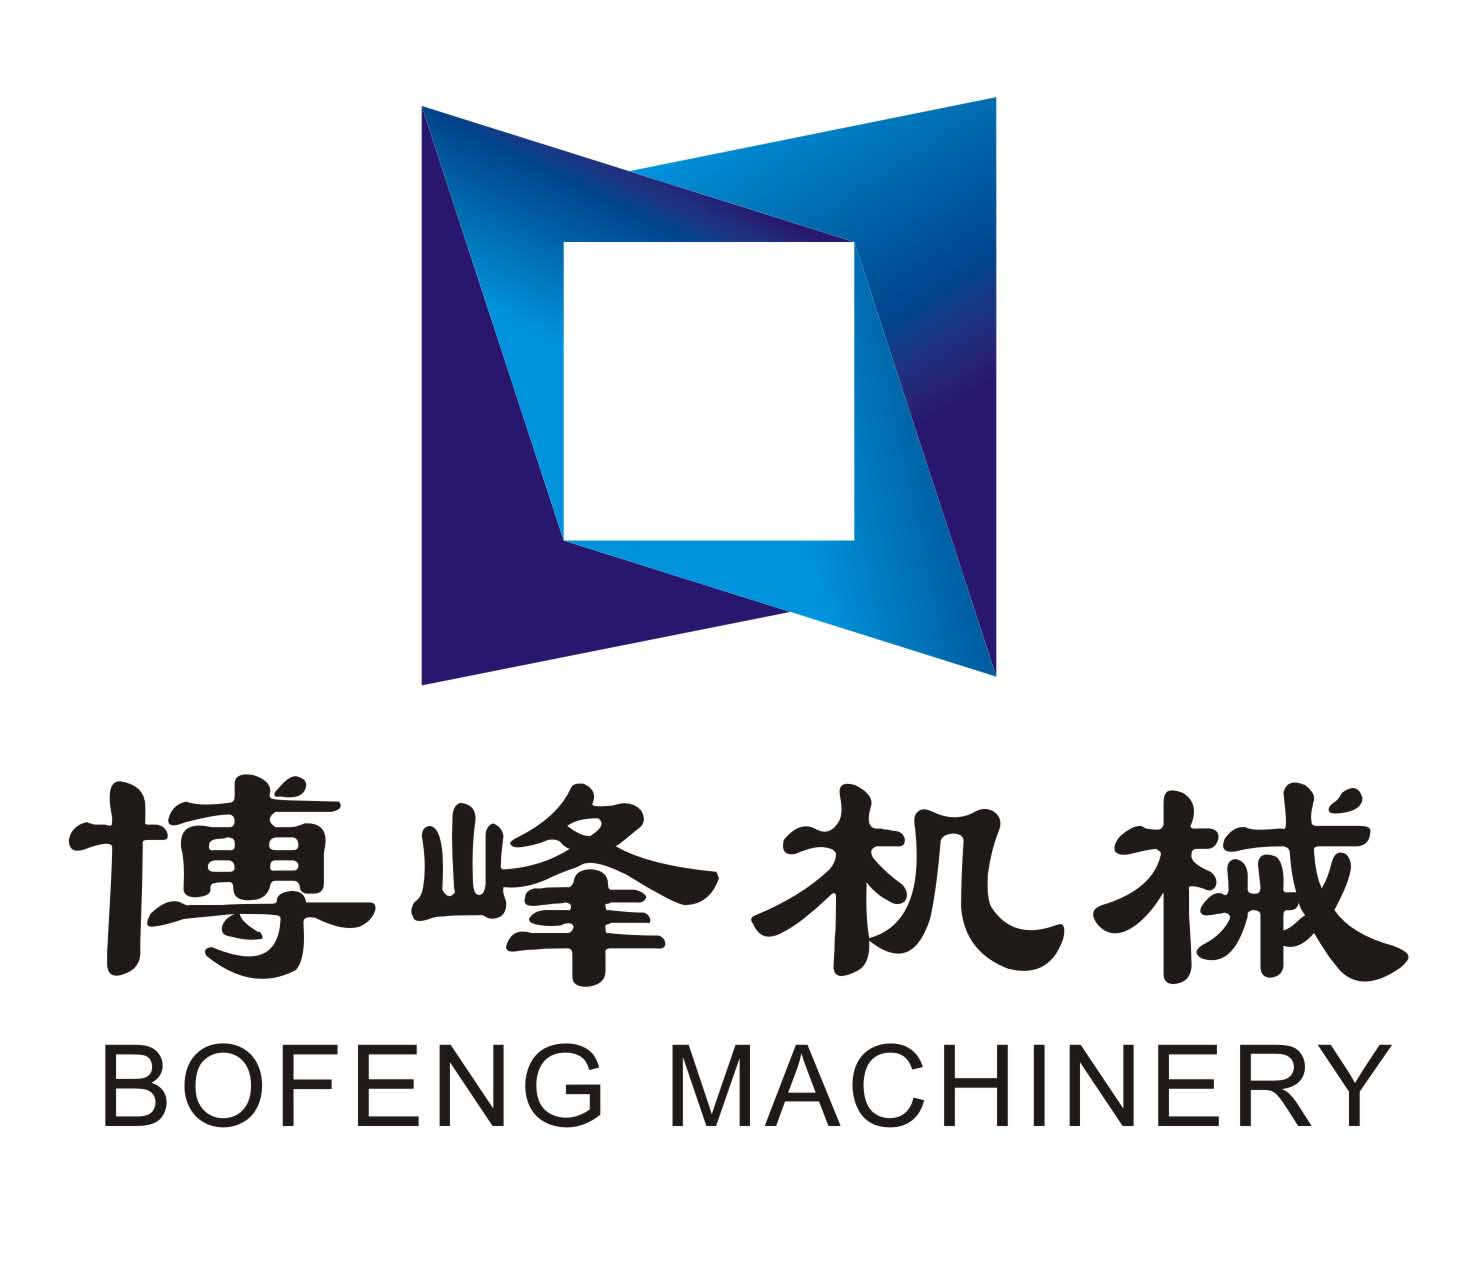 JiangYin BoFeng Machinery CO.,LTD